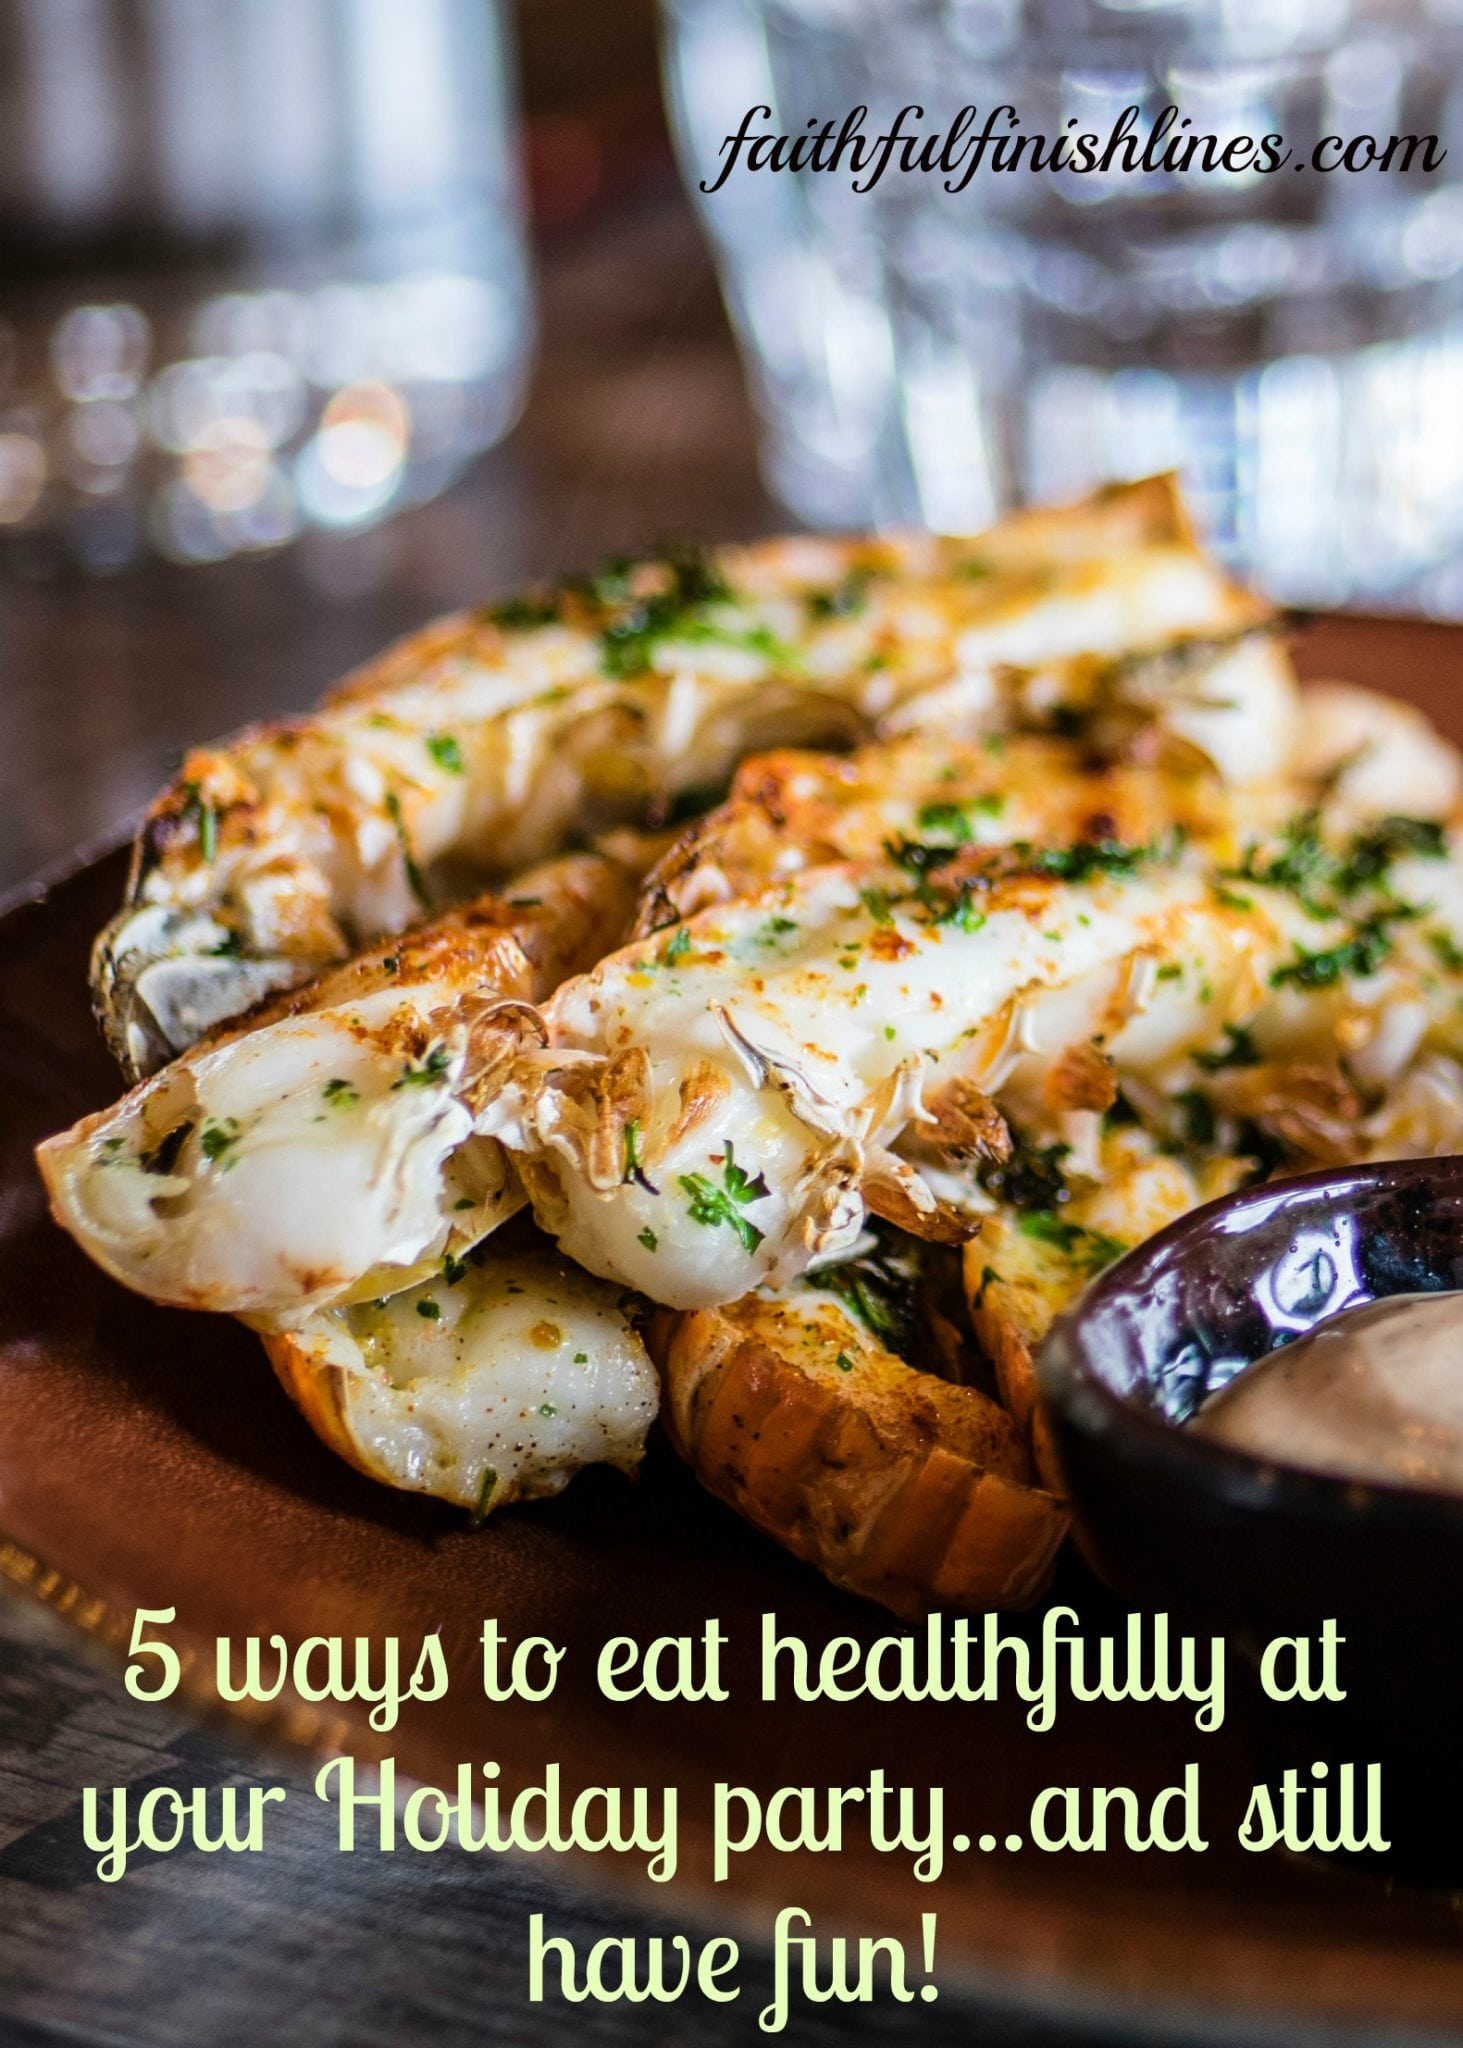 5 Ways to Eat Healthfully at a Your Holiday Party...and Still Have Fun!|The Holy Mess